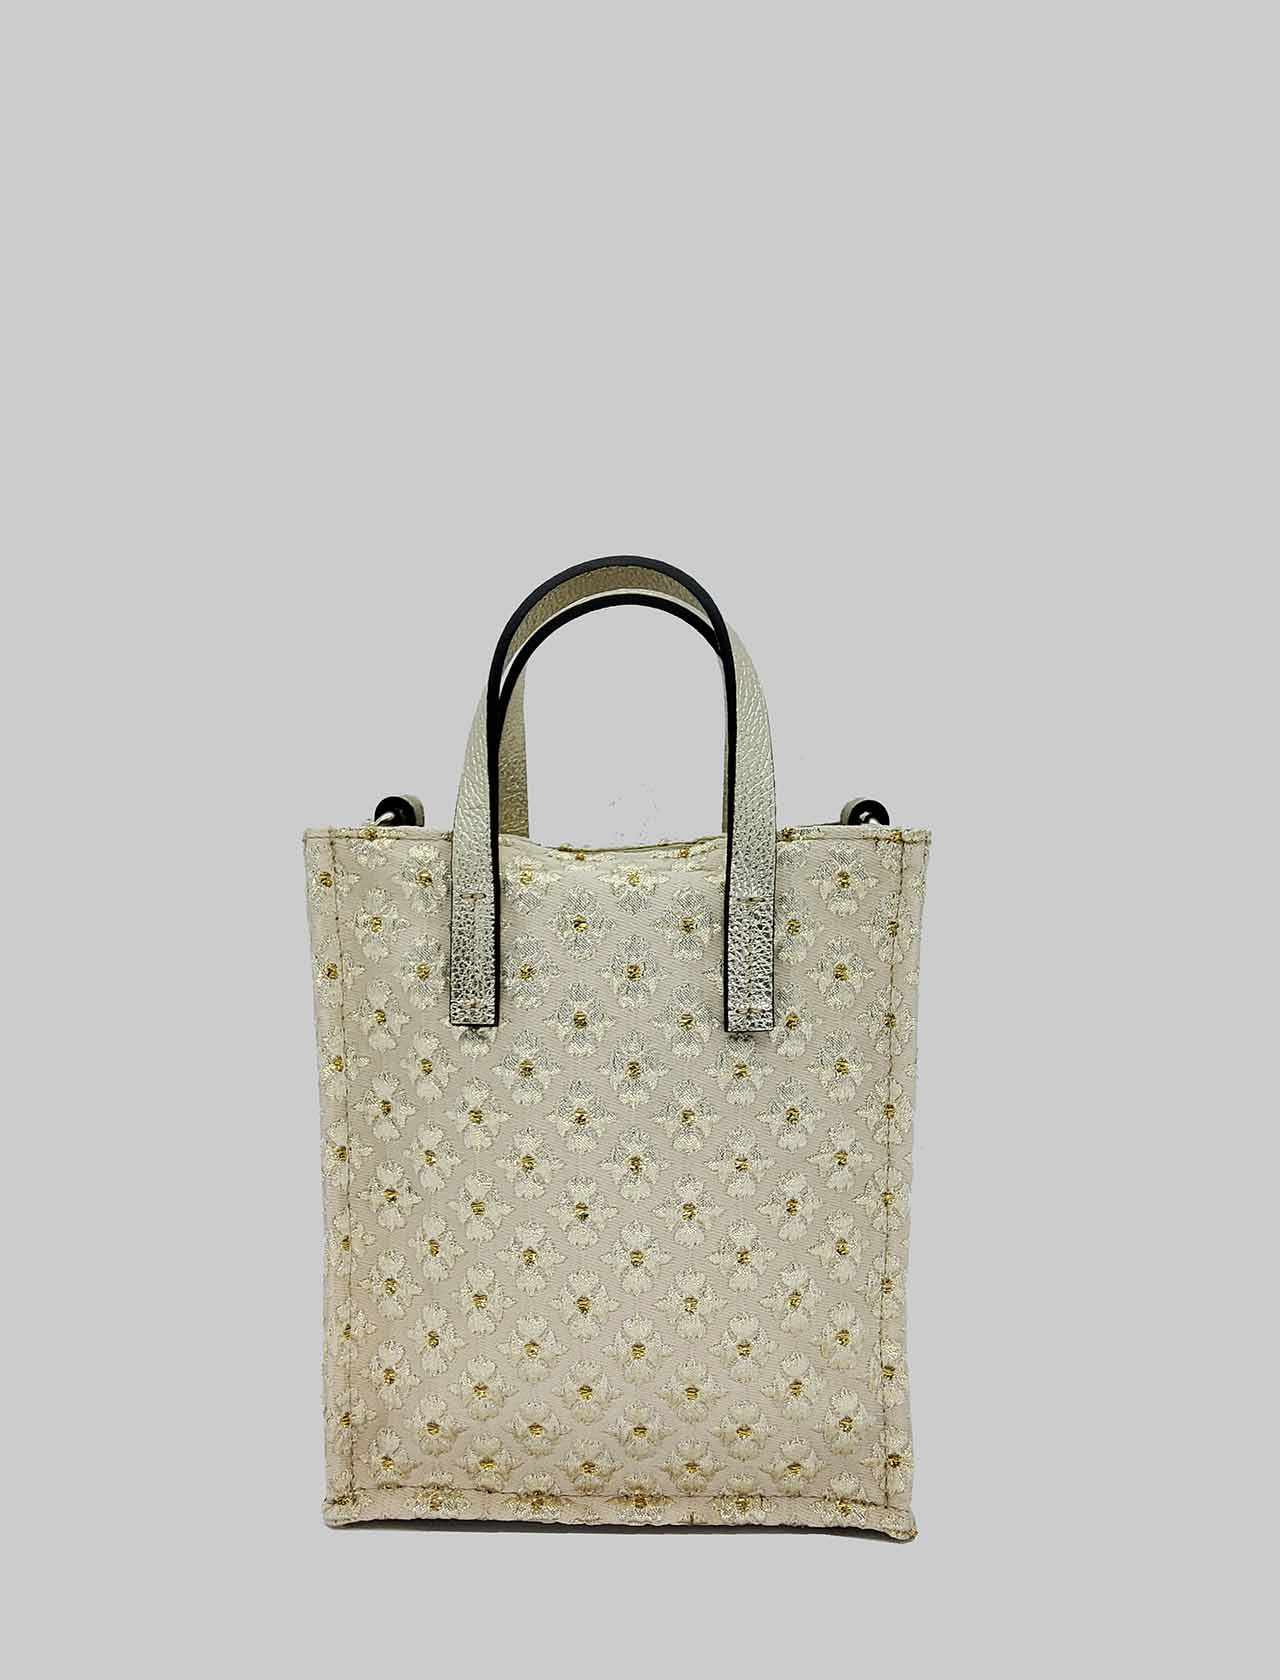 Women's Small Shoulder Bags in Champagne Fabric with Double Handle and Removable Shoulder Strap Kassiopea | Bags and backpacks | MINI UMIL607